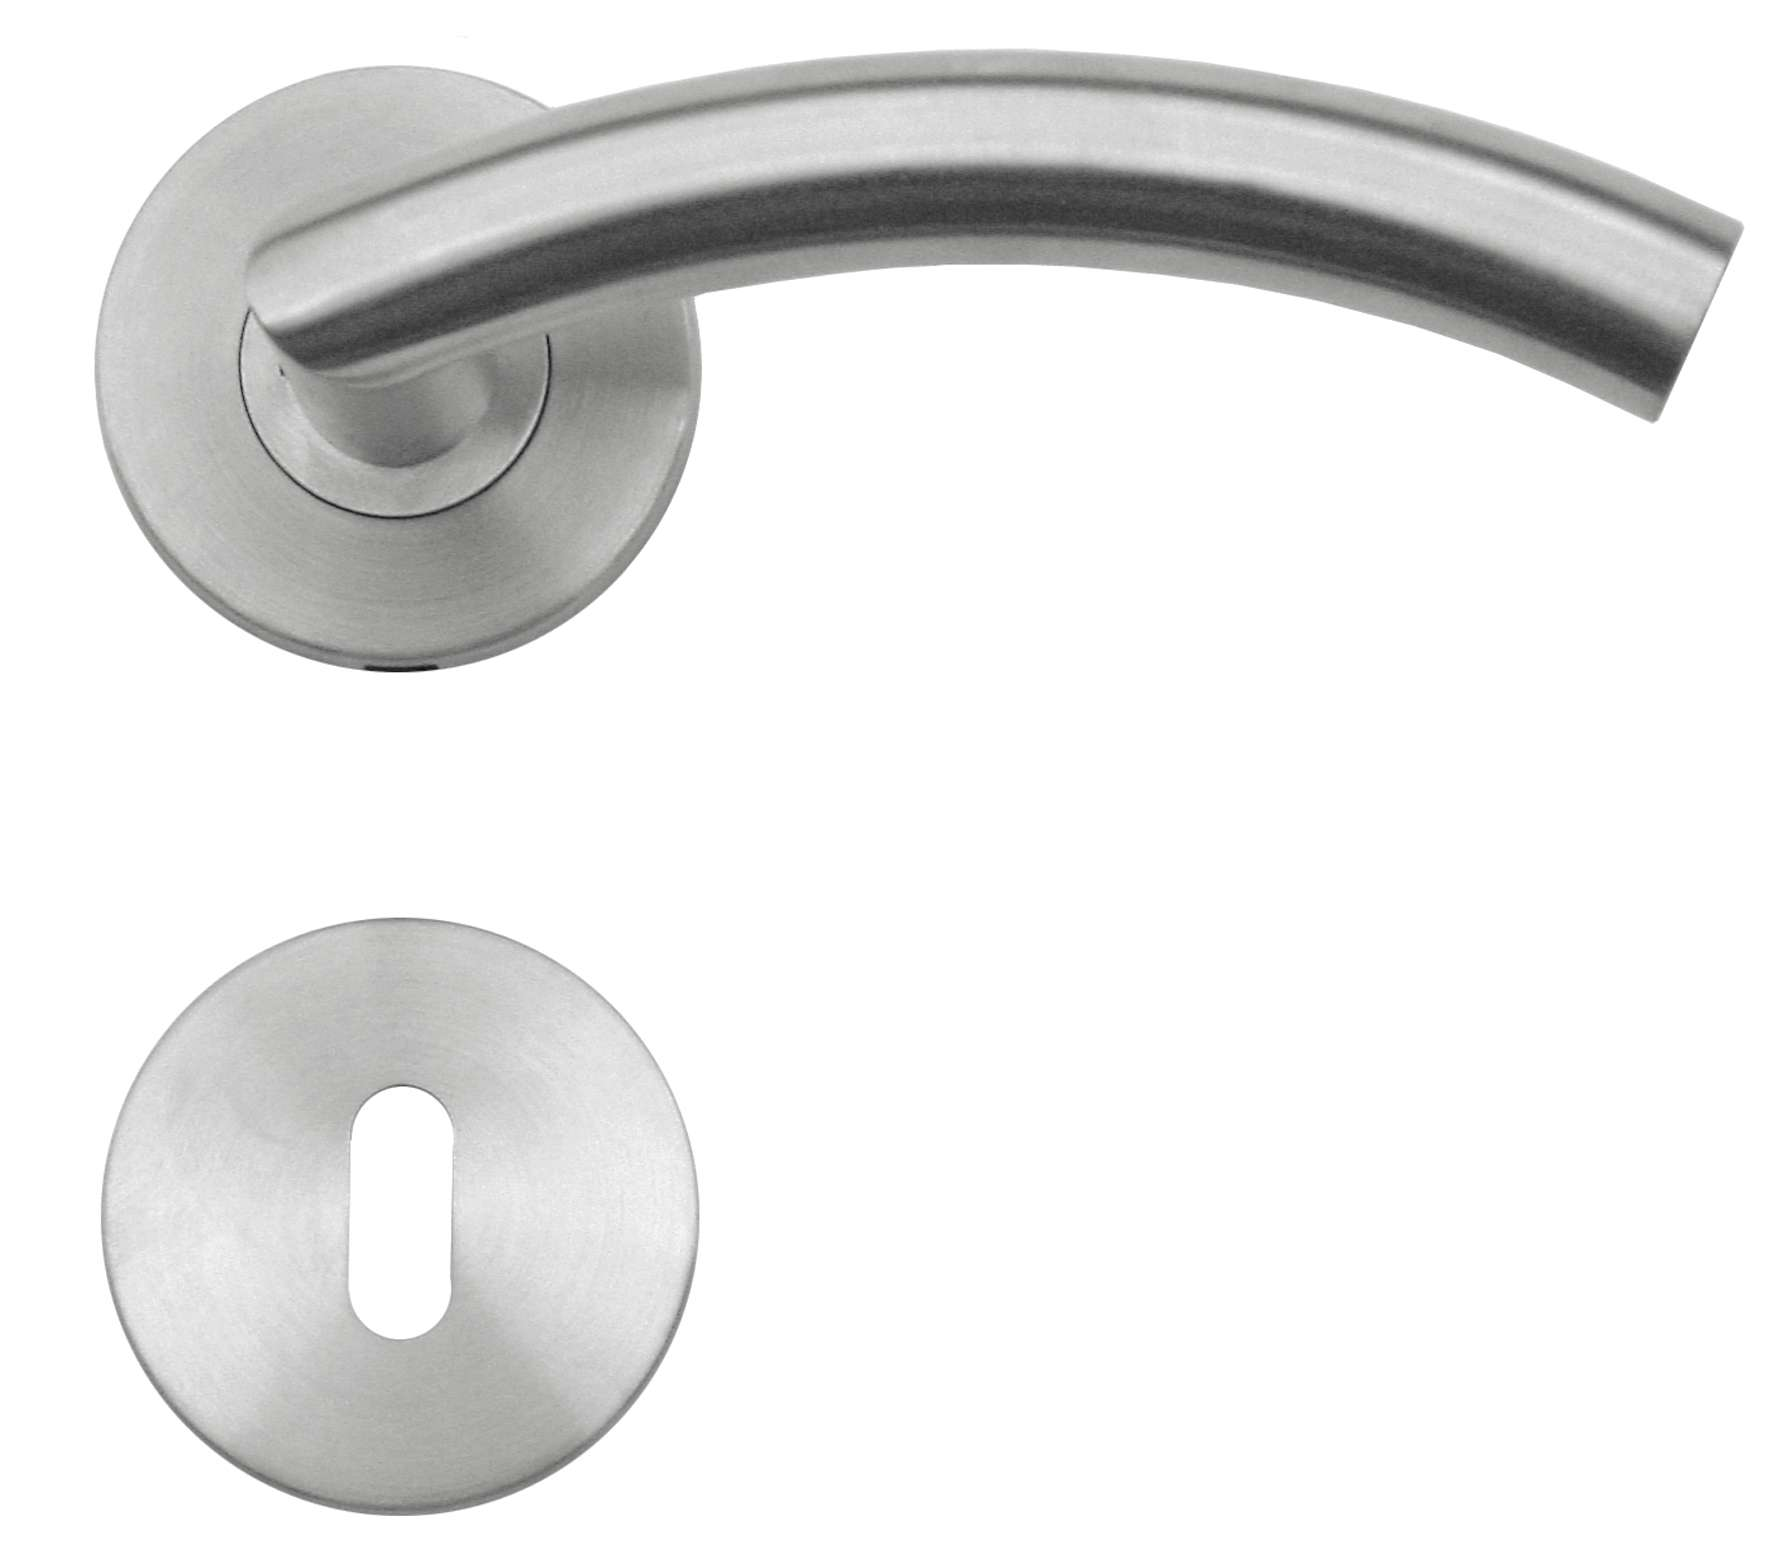 BEQUILLE GI SHAPE 19MM INOX PLUS R+E